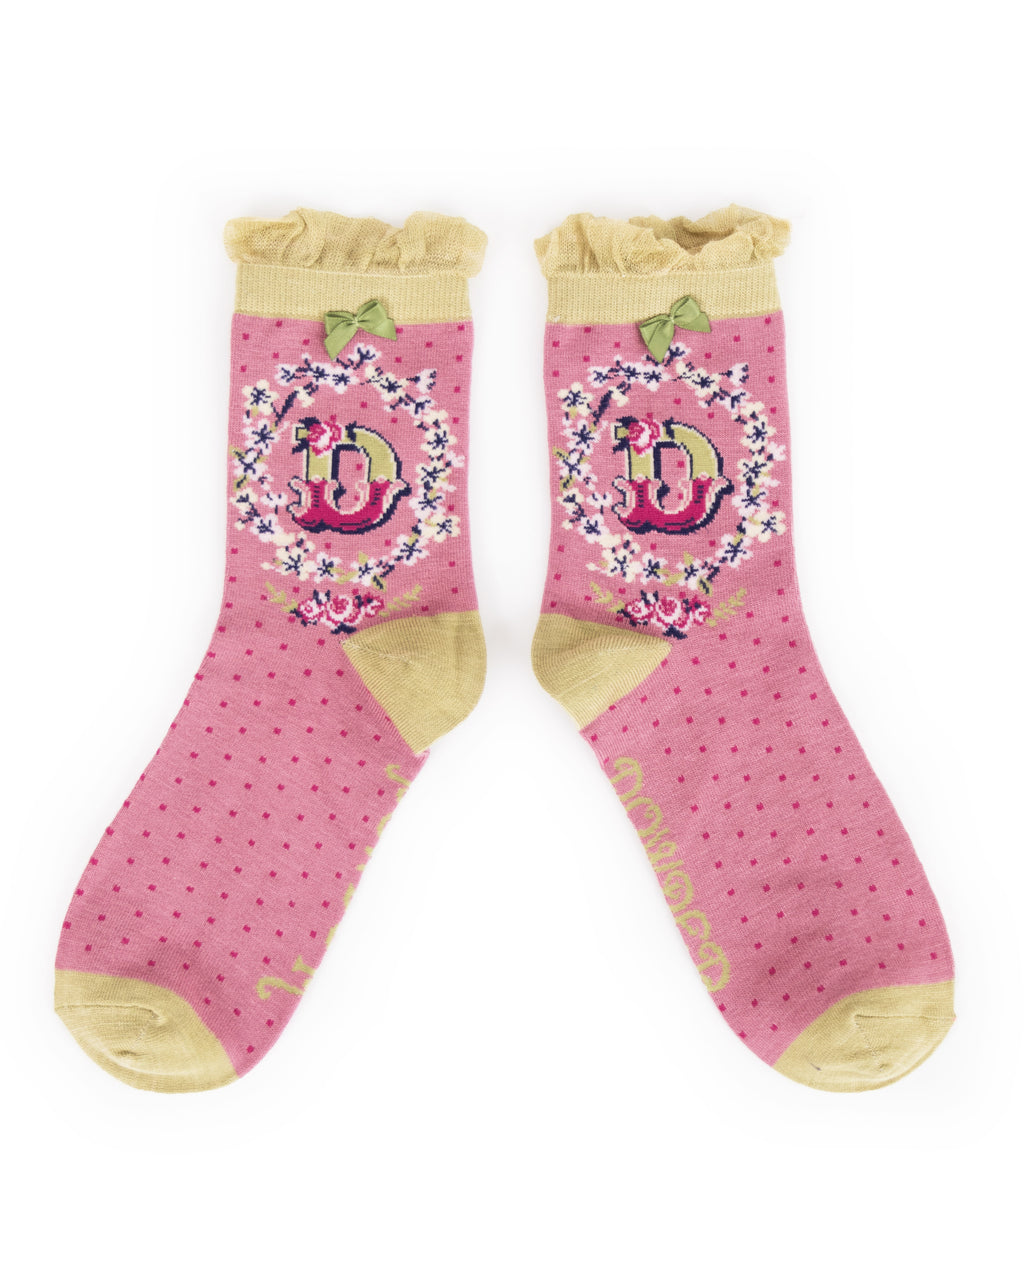 Powder A-Z Ankle Socks - D